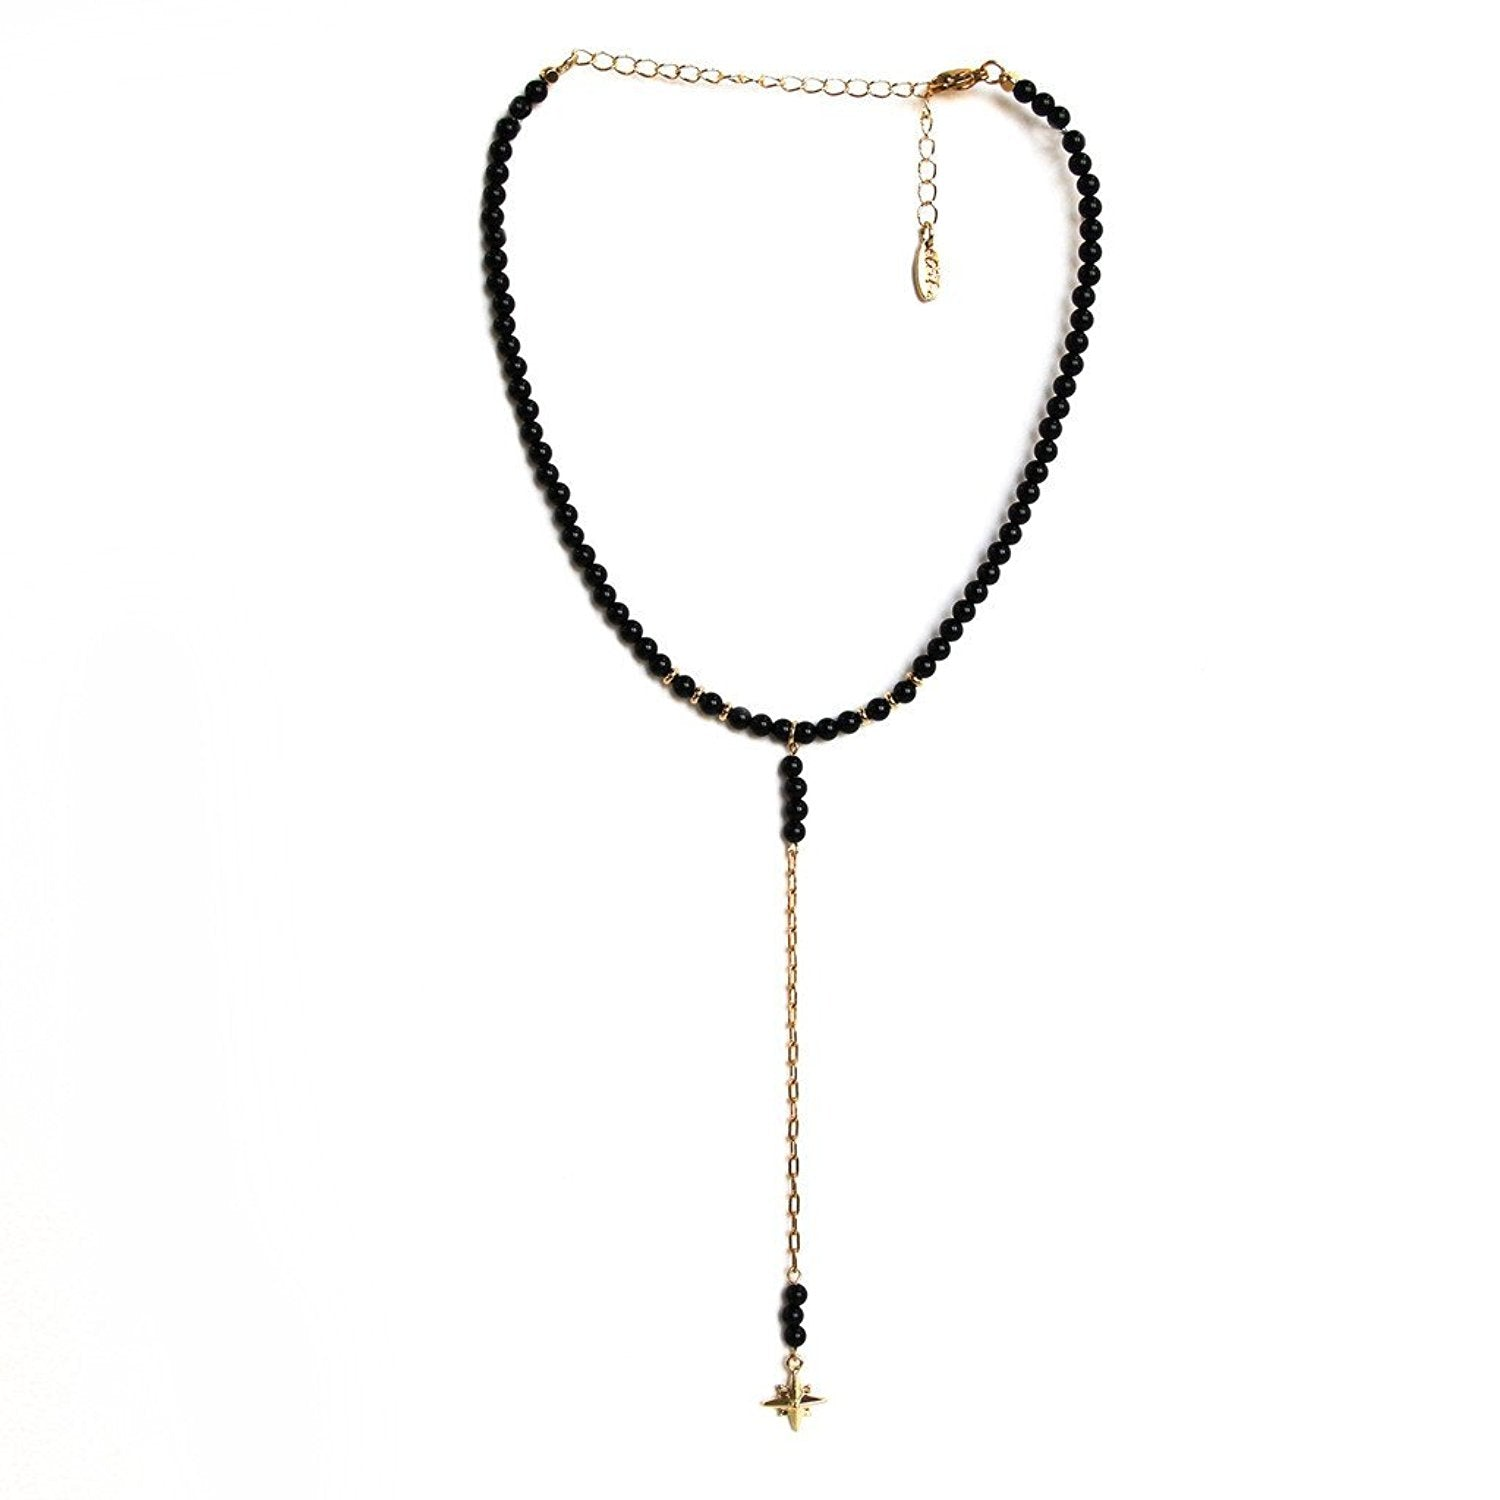 Ettika Call Me maybe Jet and Gold Tone Beaded North Star Choker Necklace